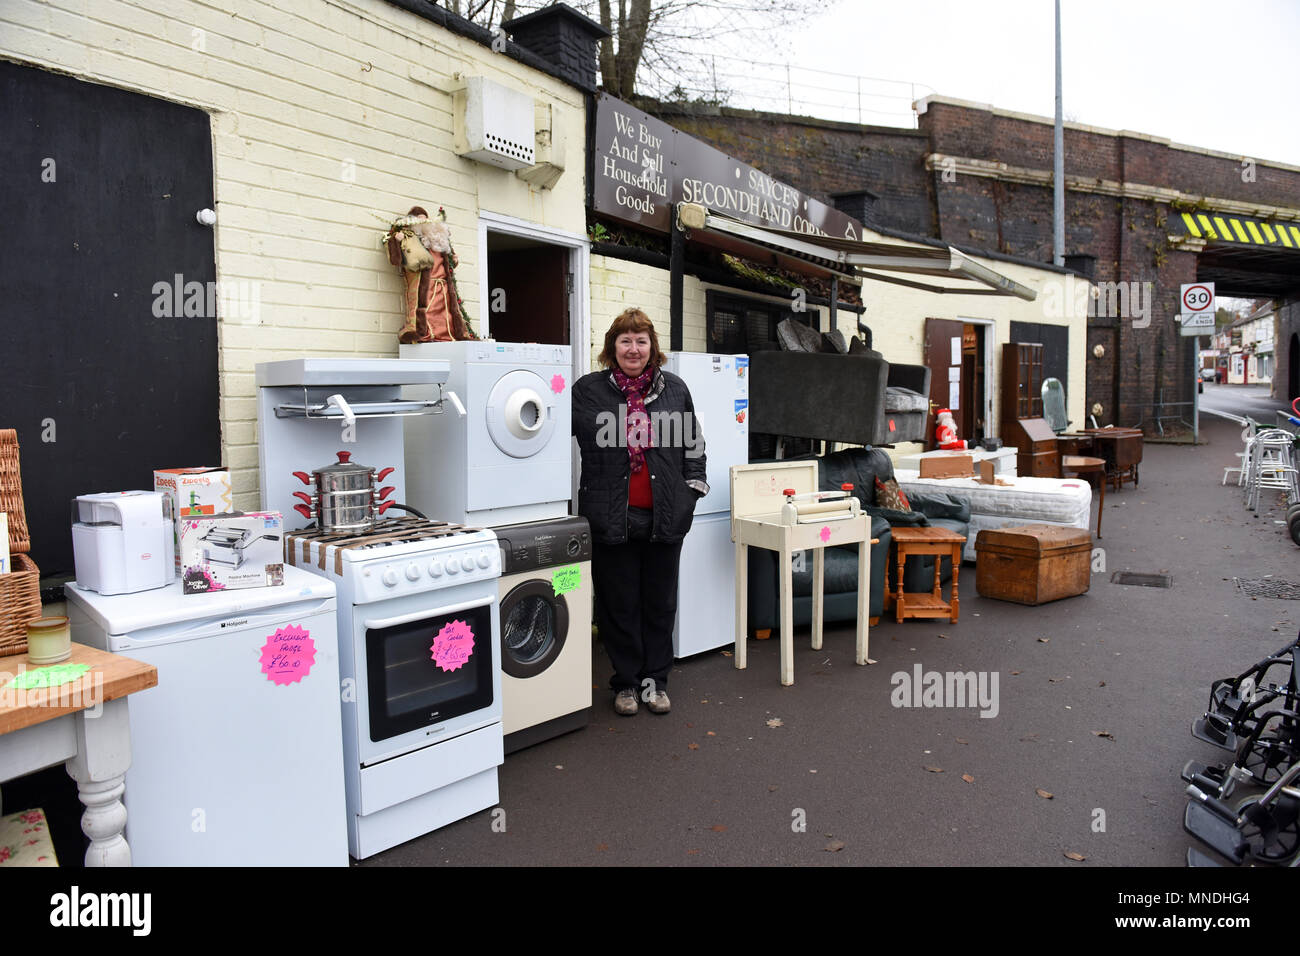 Second hand furniture and household goods shop in Oakengates